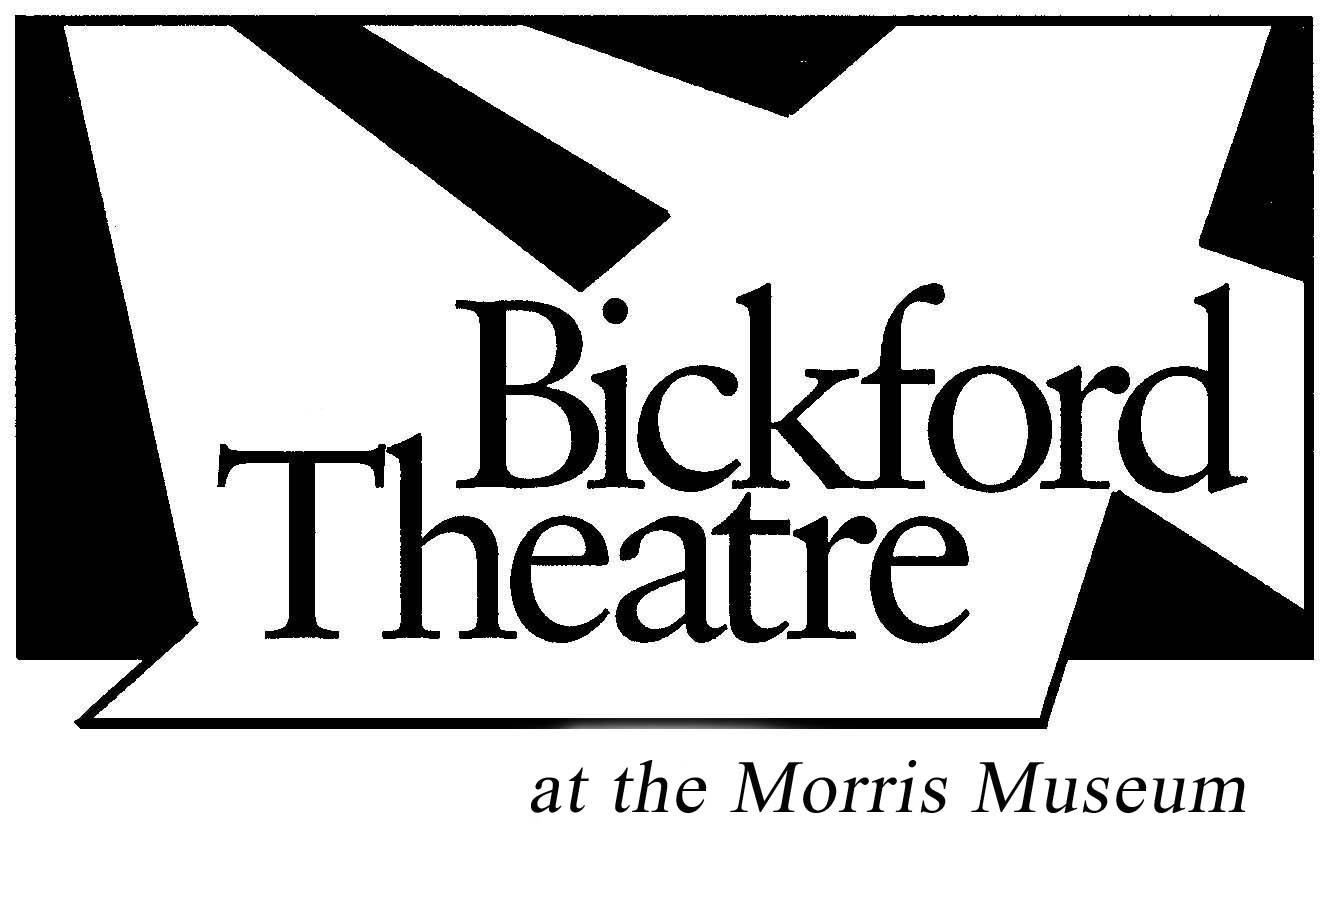 Bickford Theatre at the Morris Museum